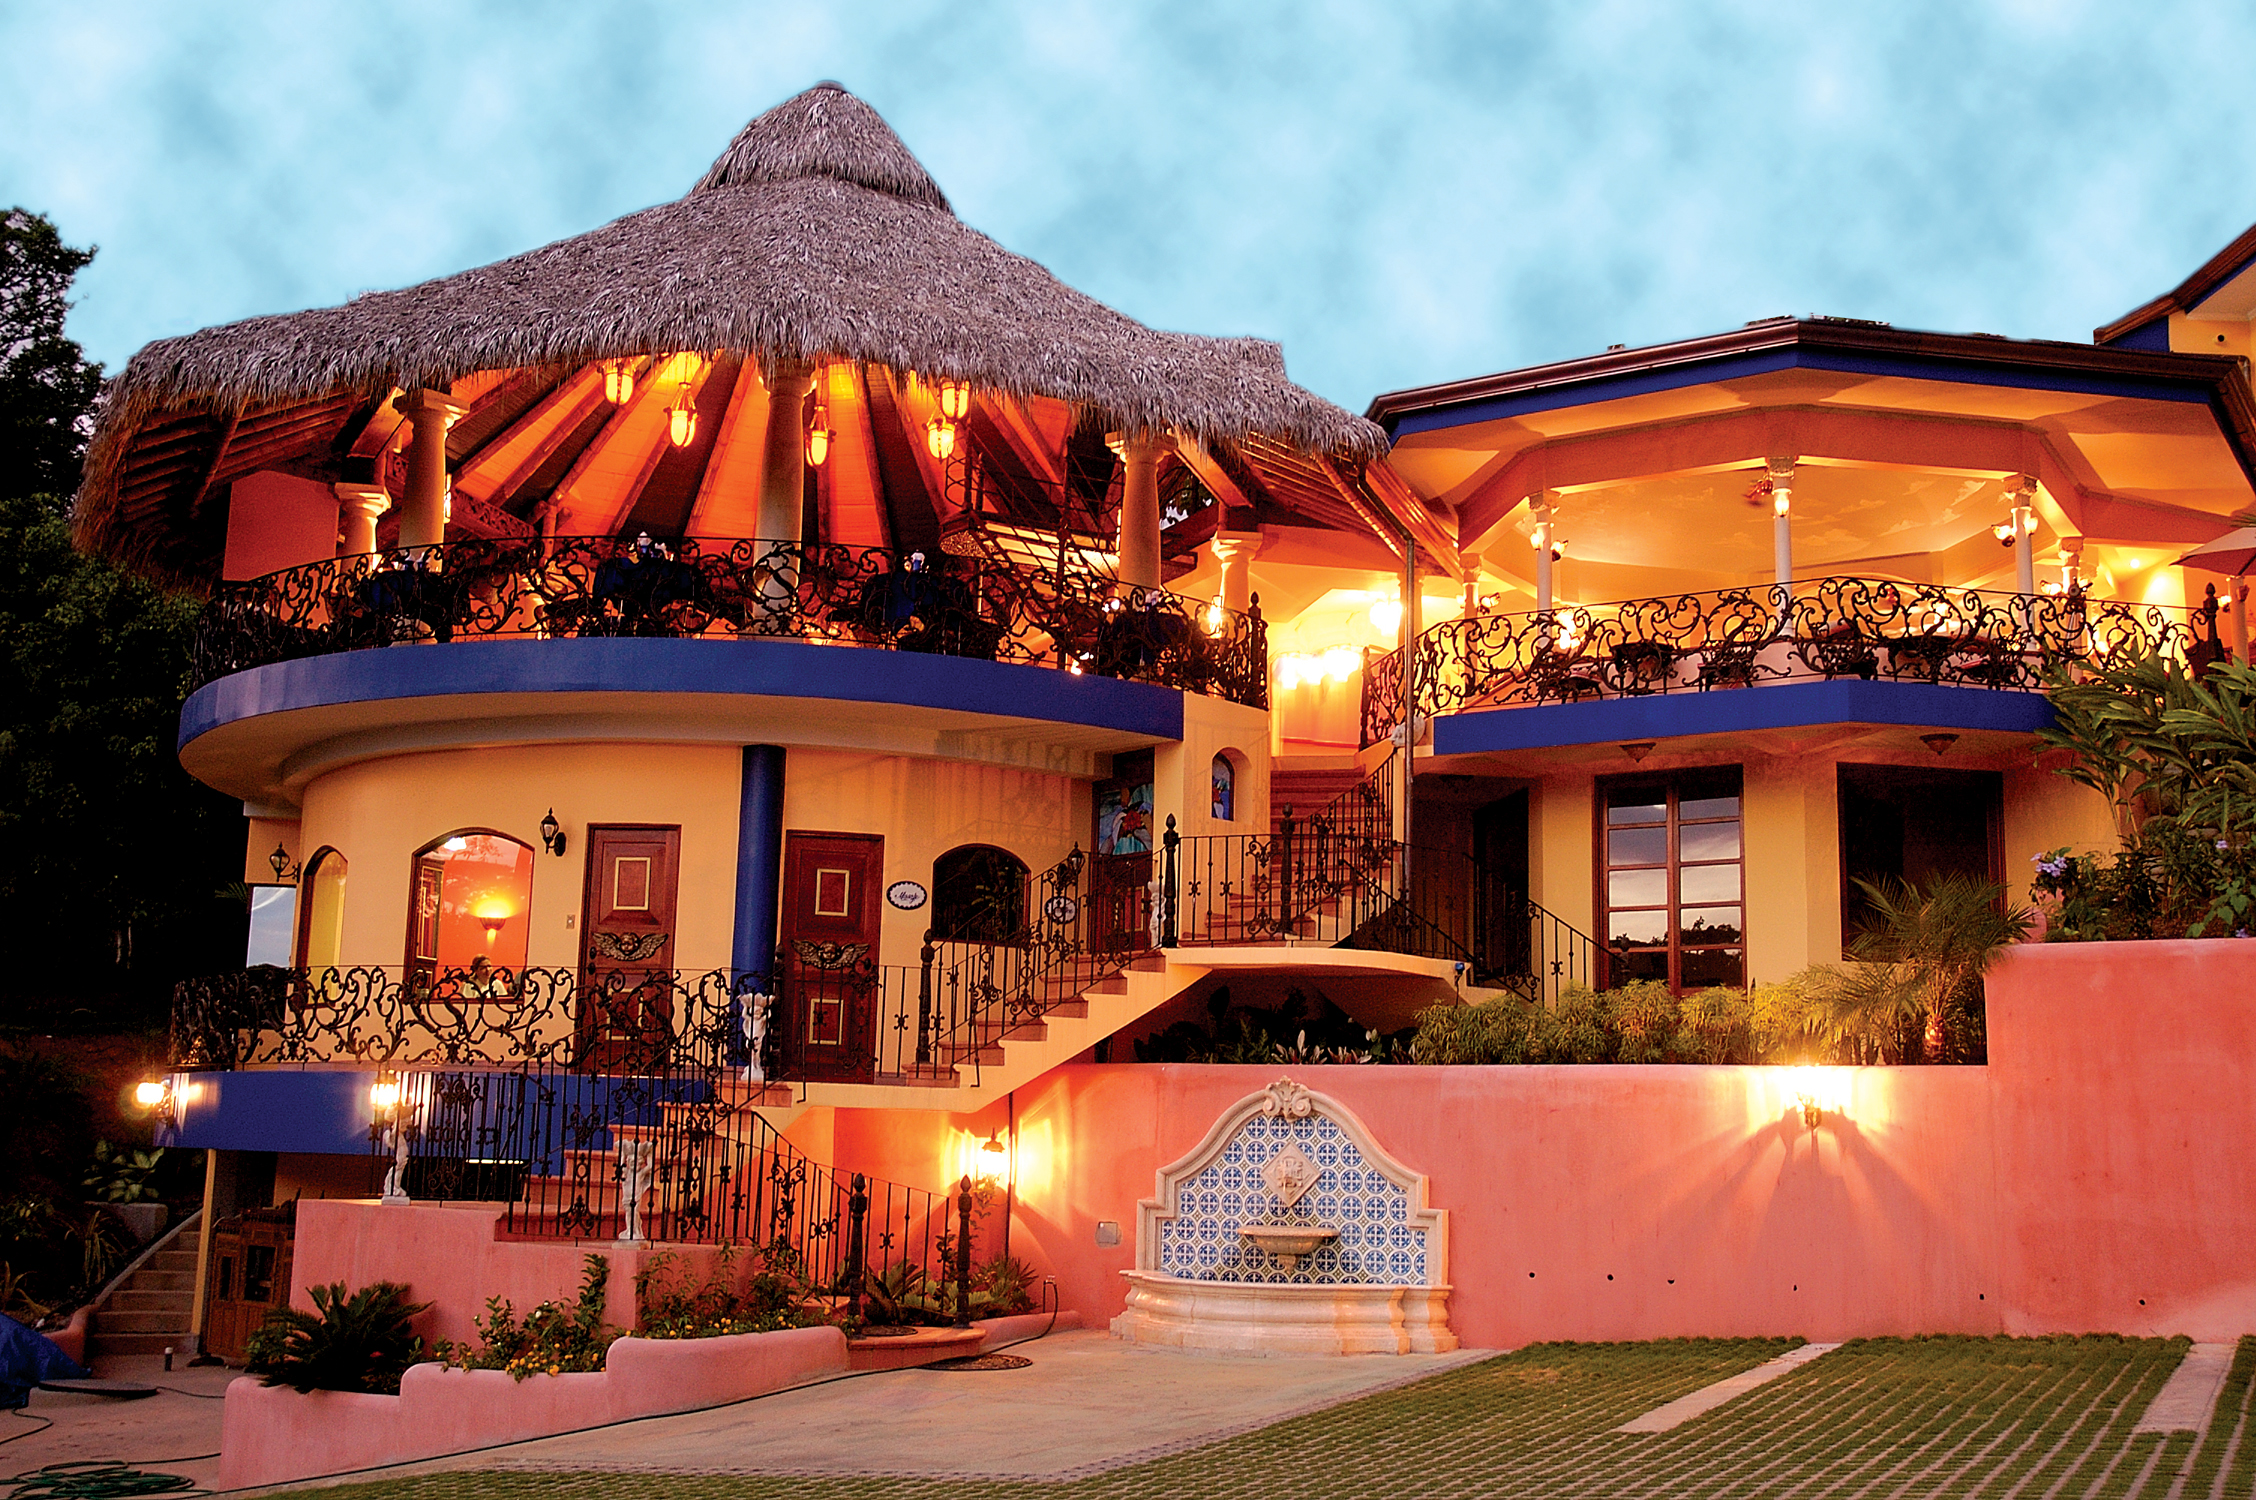 Costa Rica Hotels For Sale- A Growing Real Estate Investment